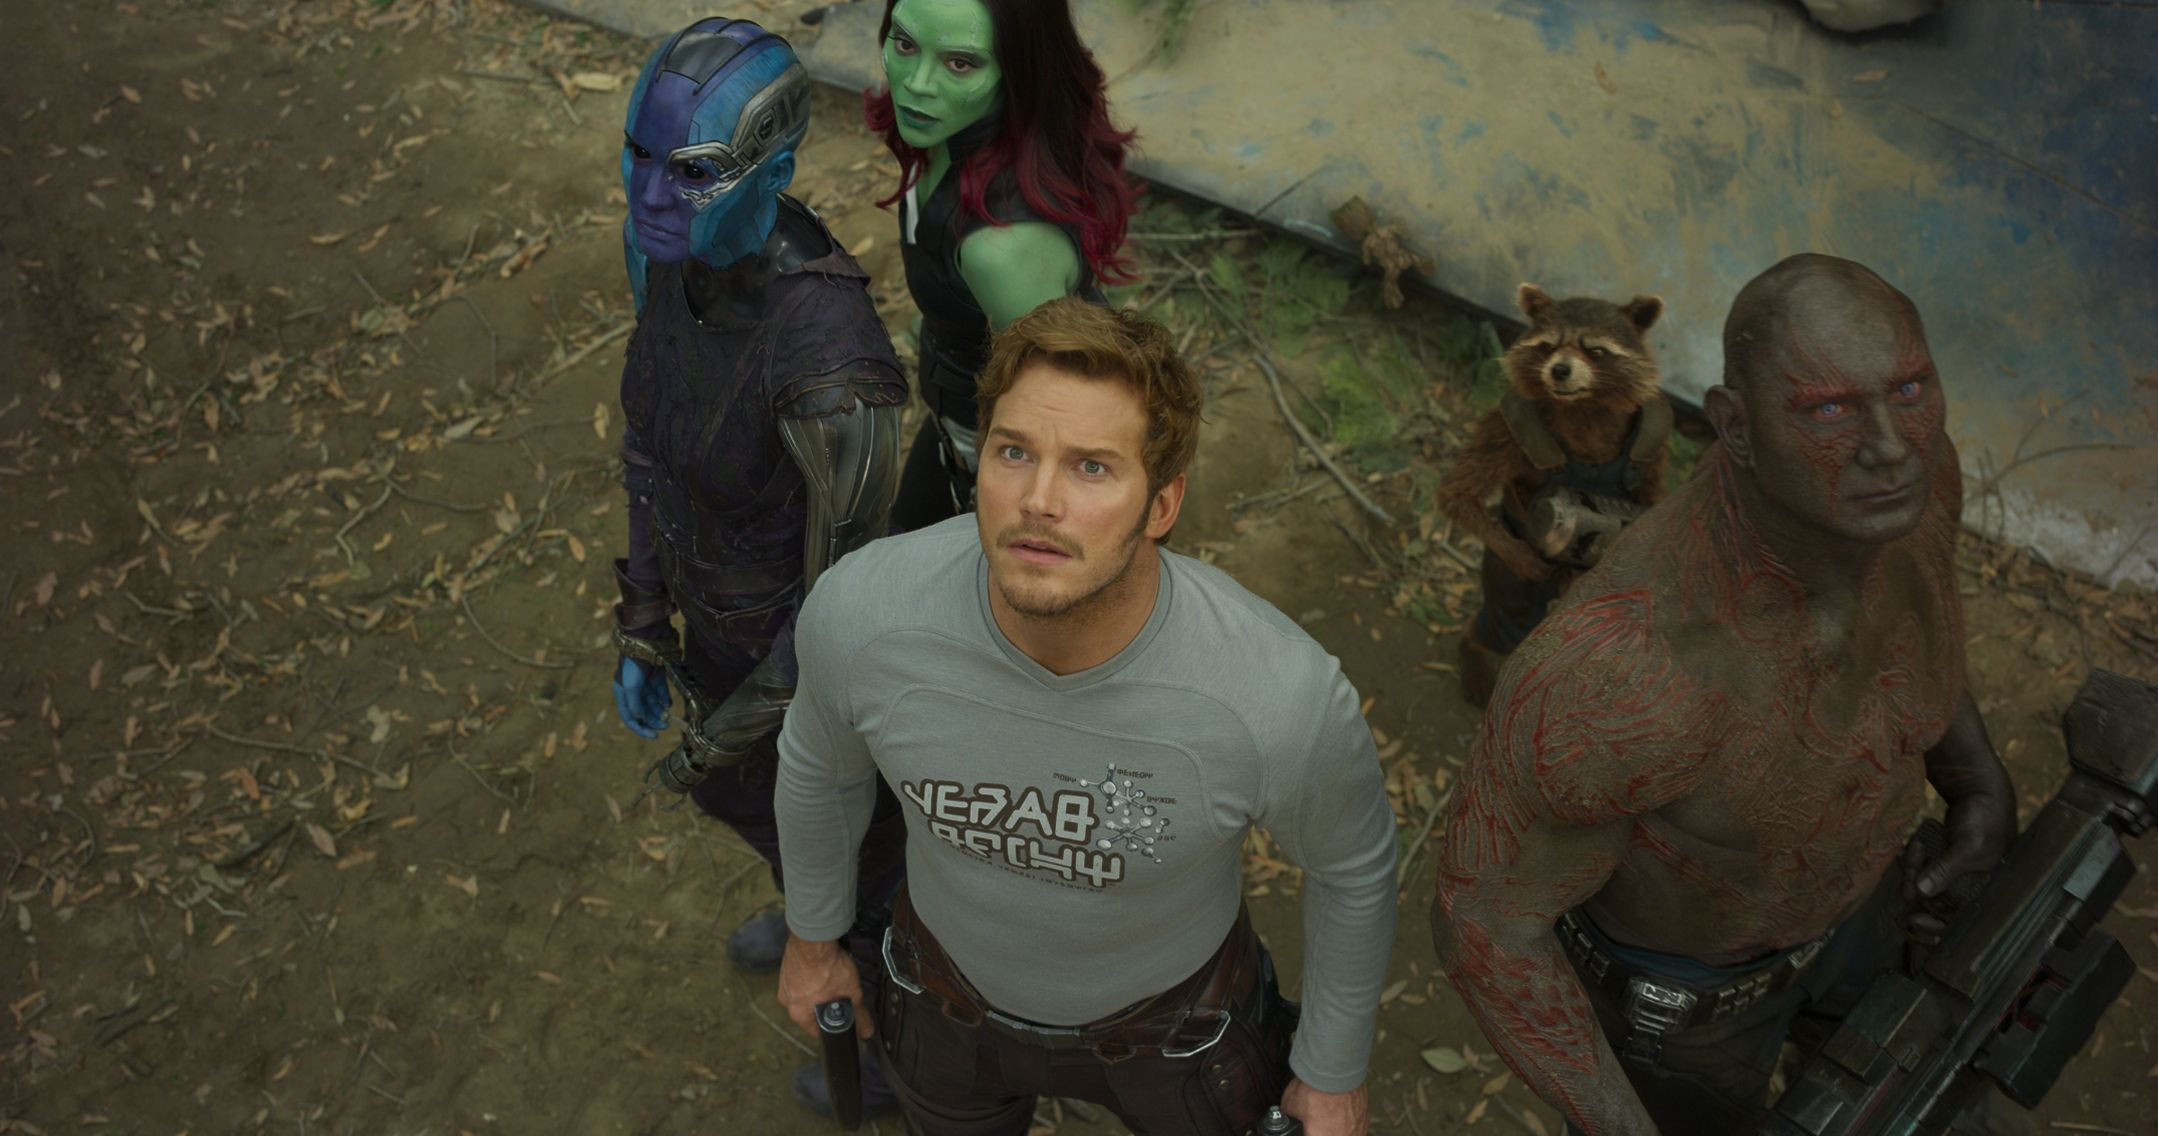 Family ties test the unconventional 'Guardians of the Galaxy'